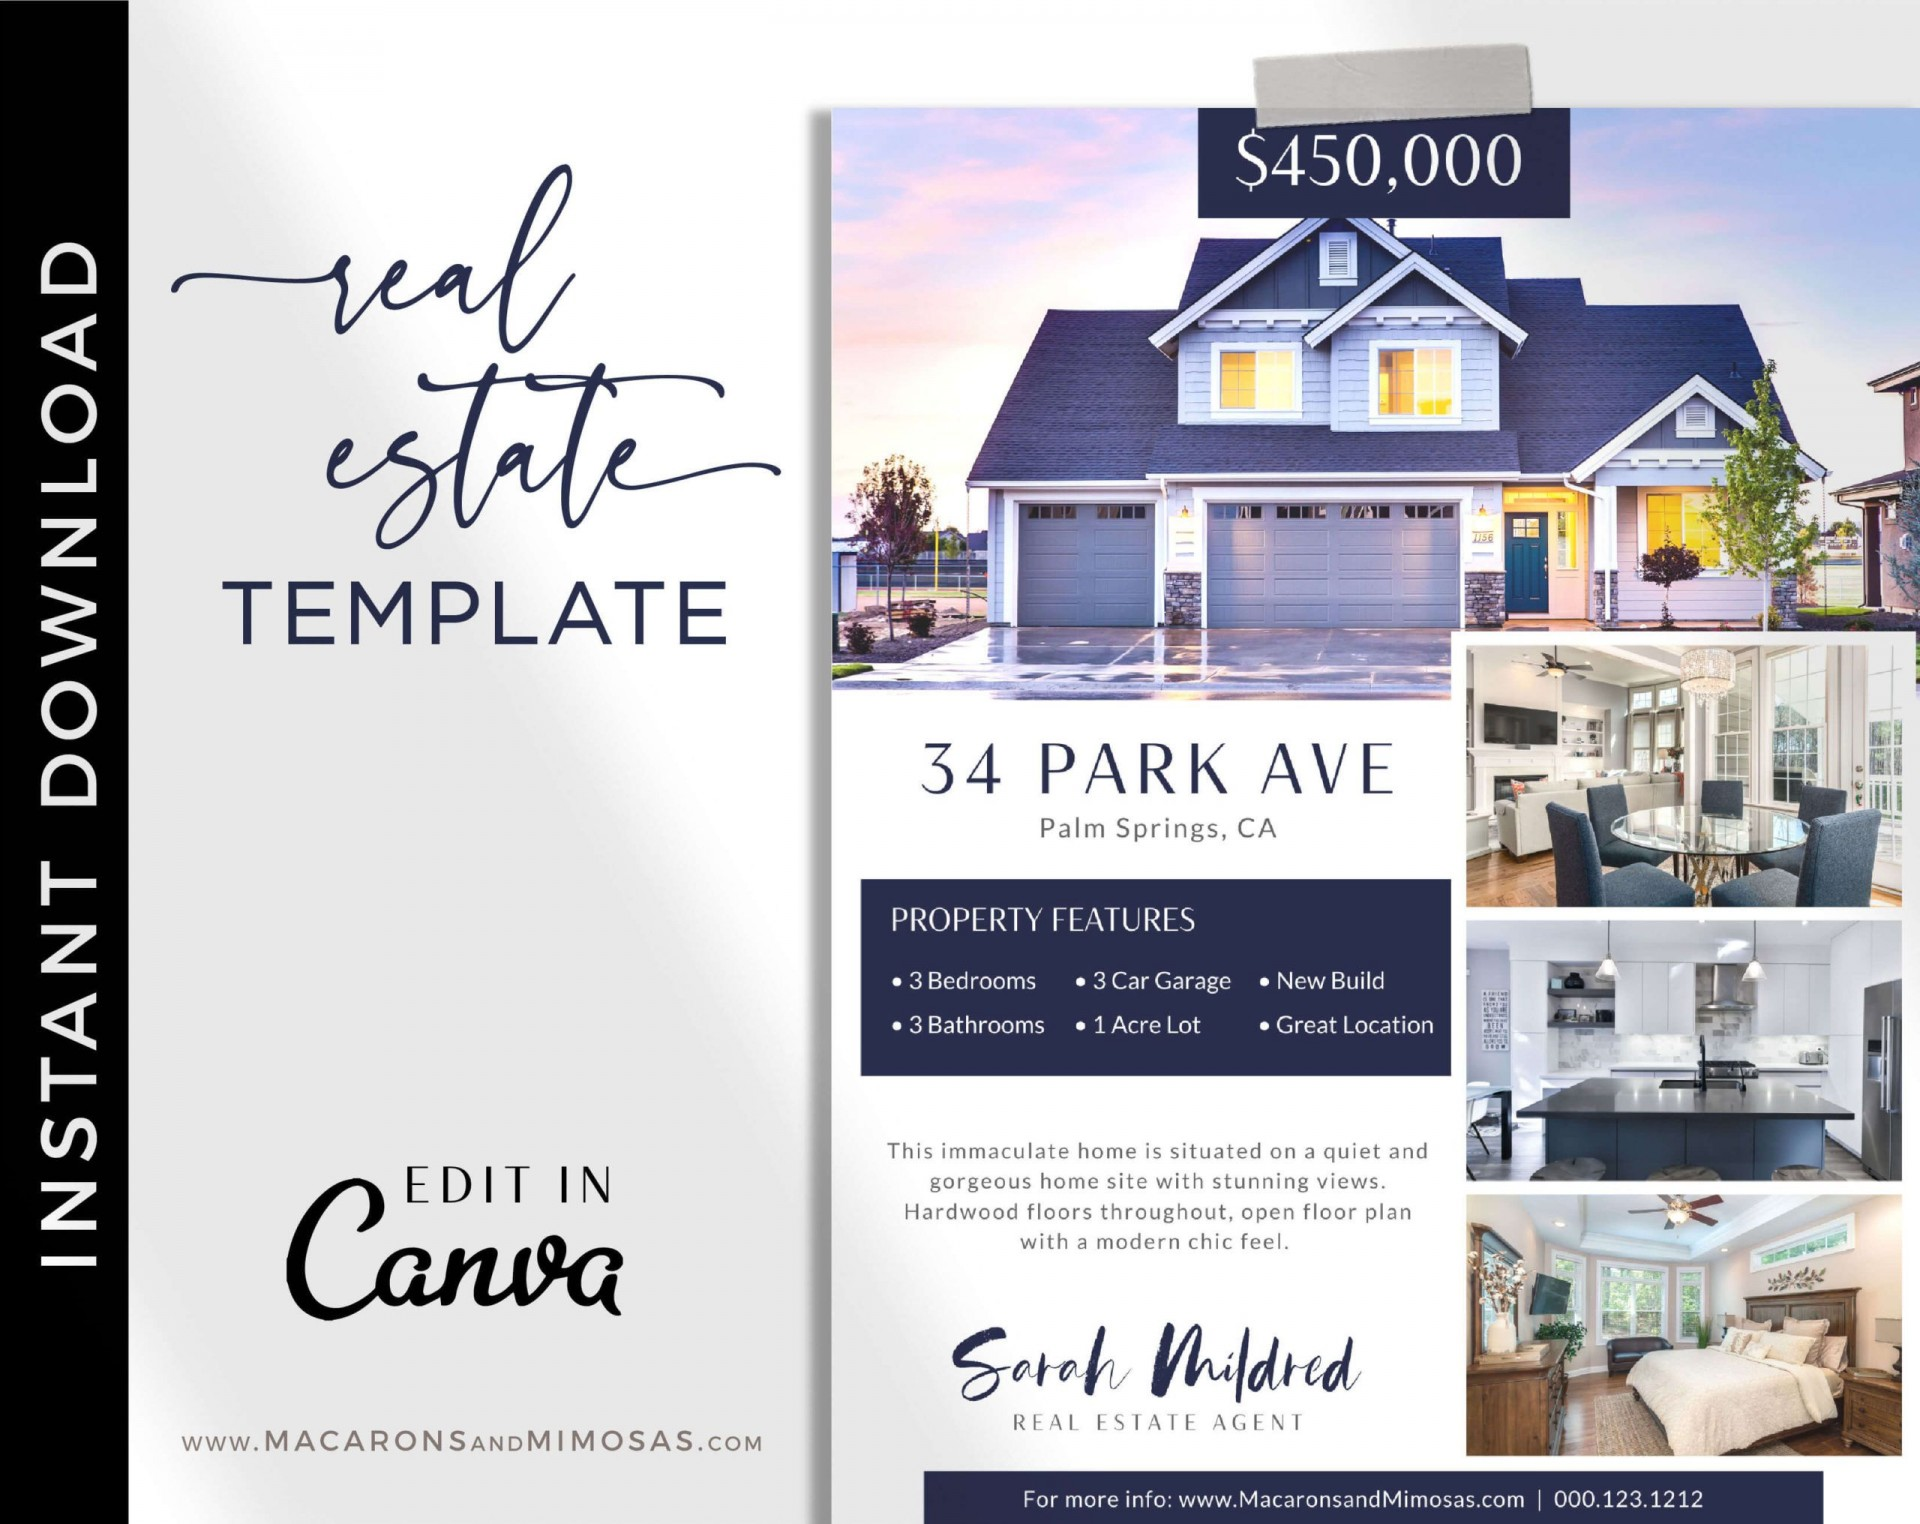 006 Formidable Open House Flyer Template High Definition  Templates Word Free Microsoft Real Estate1920